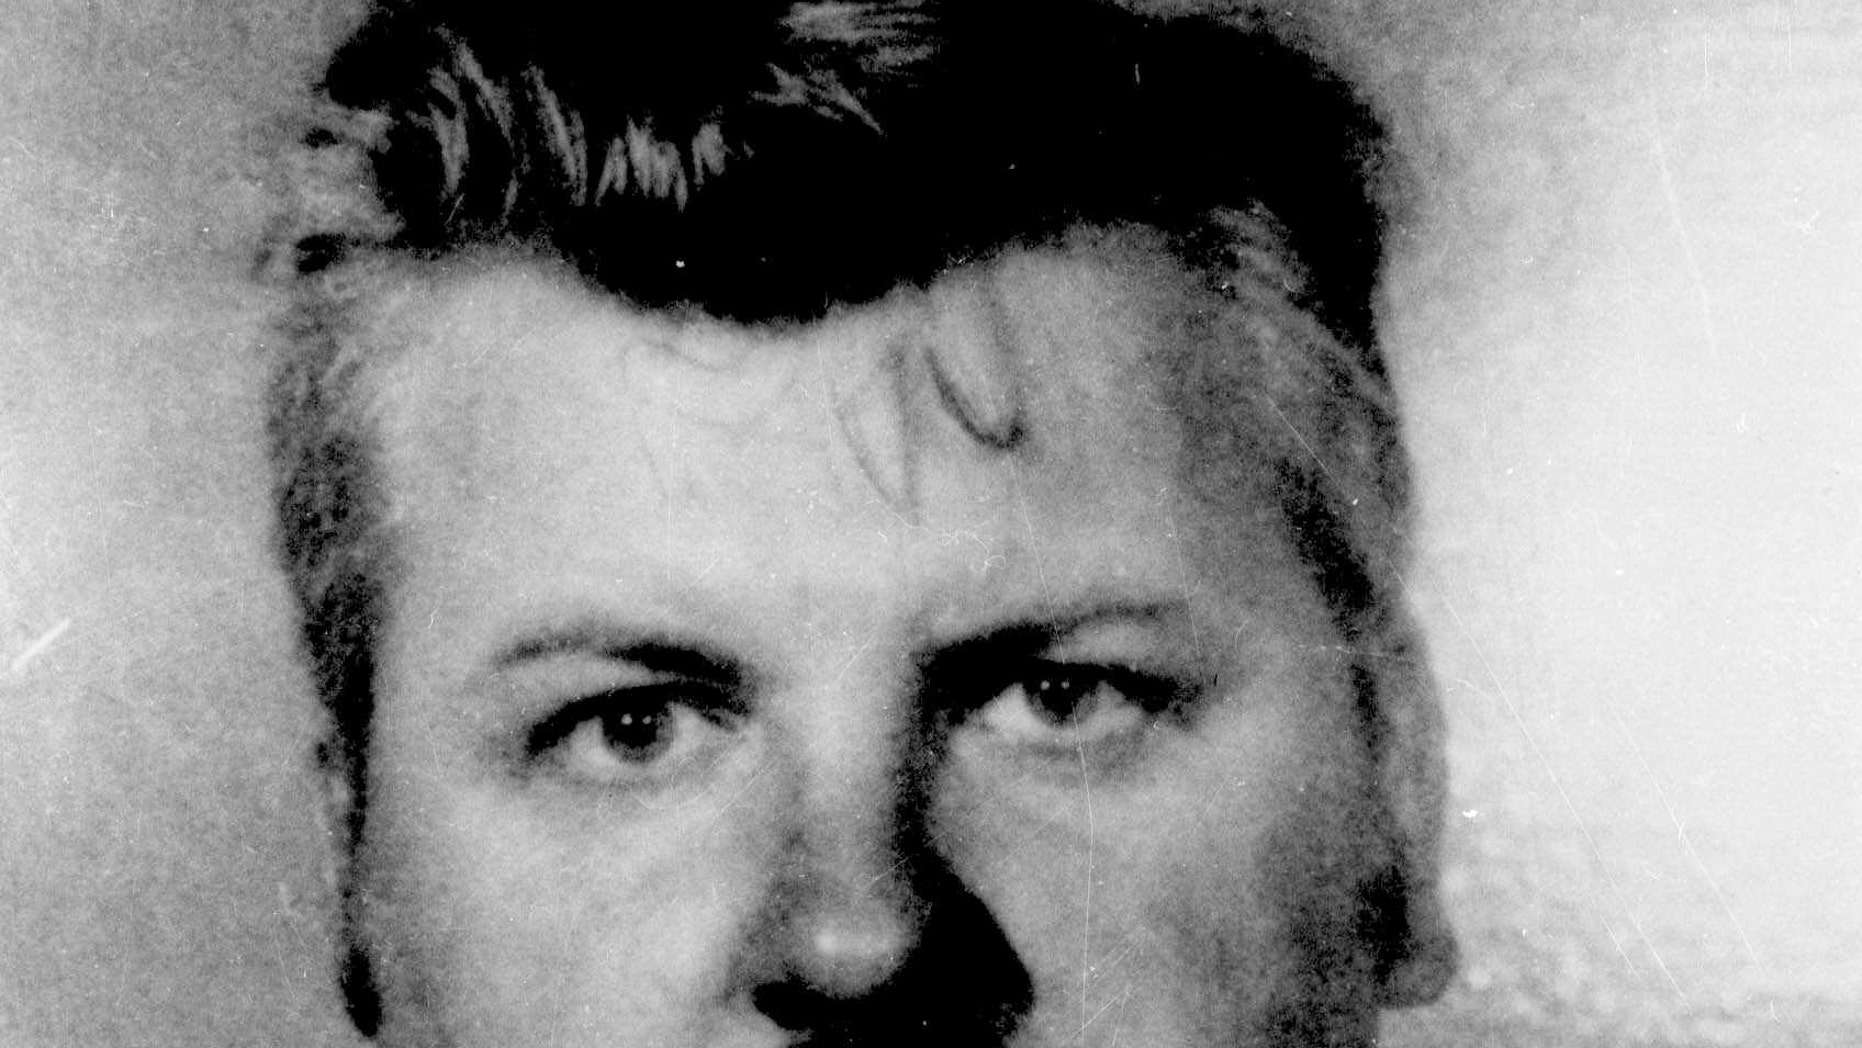 1978: This file photo shows serial killer John Wayne Gacy. Detectives who have long wondered if Gacy killed others besides the 33 young men he was convicted of murdering may soon get to search for bodies underneath an apartment complex where his late mother once lived, a law enforcement official said.